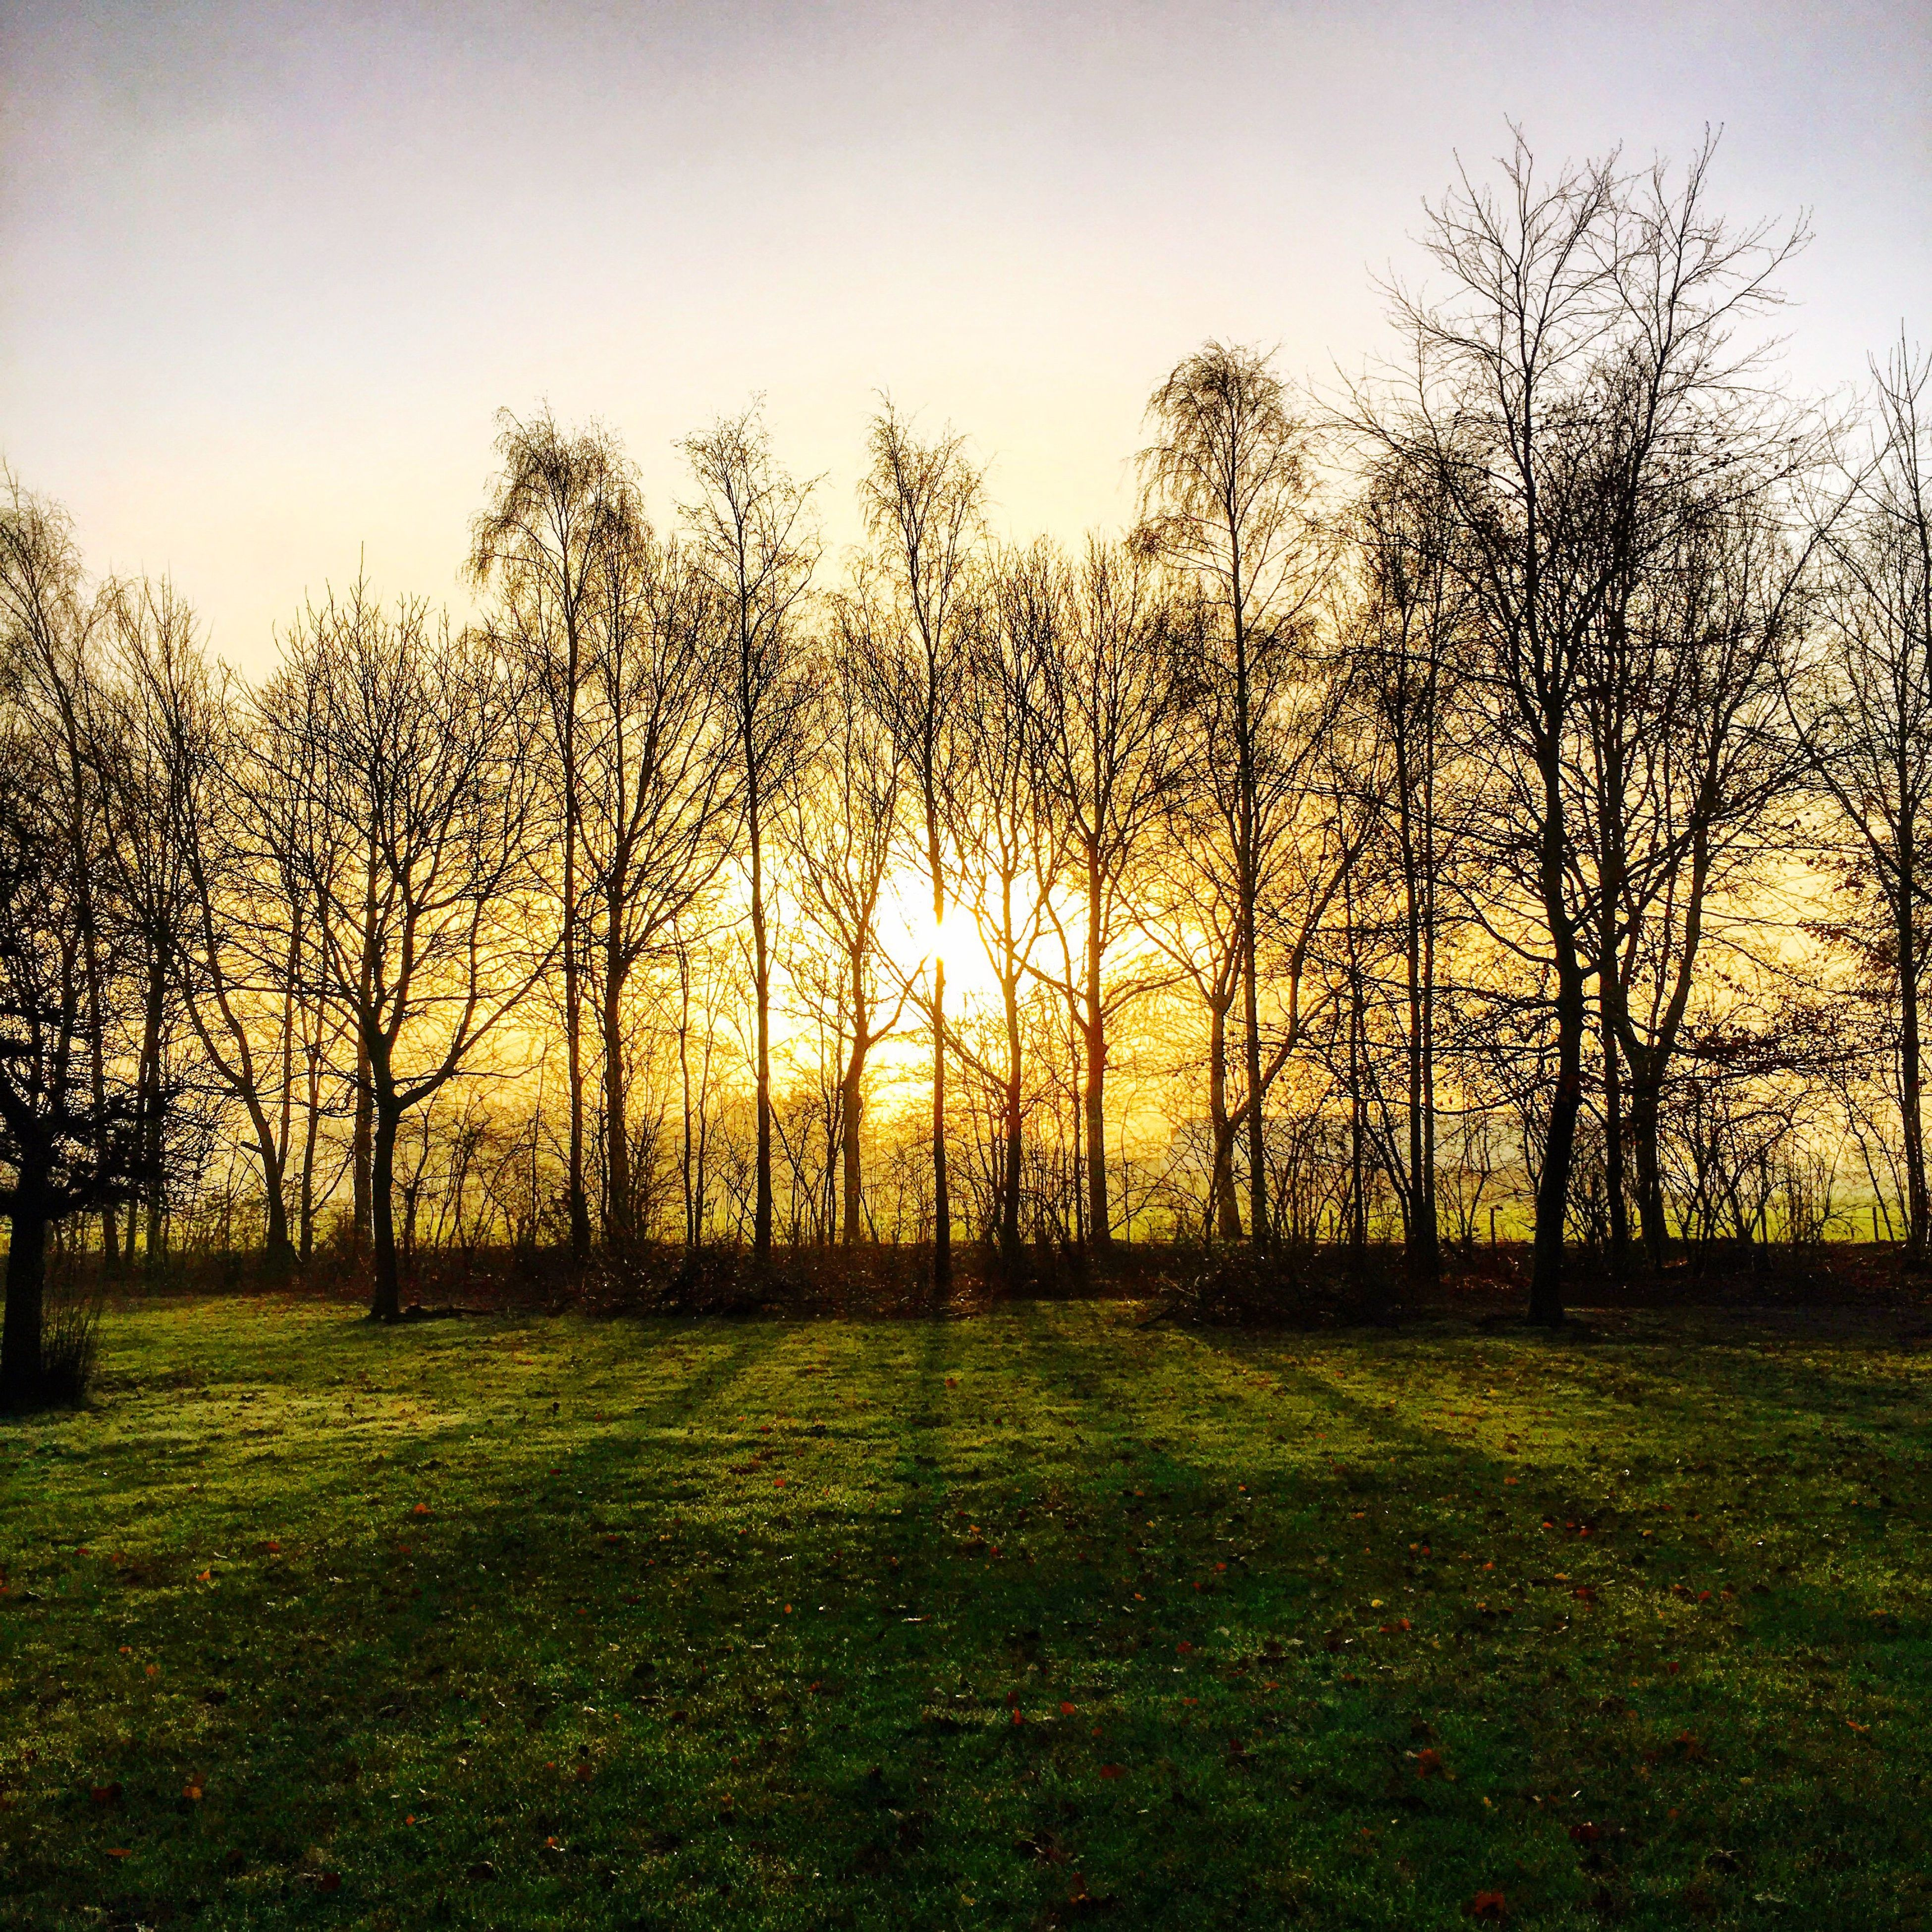 tree, grass, tranquility, bare tree, tranquil scene, field, sunset, landscape, scenics, beauty in nature, grassy, nature, clear sky, sky, branch, growth, silhouette, idyllic, sun, sunlight